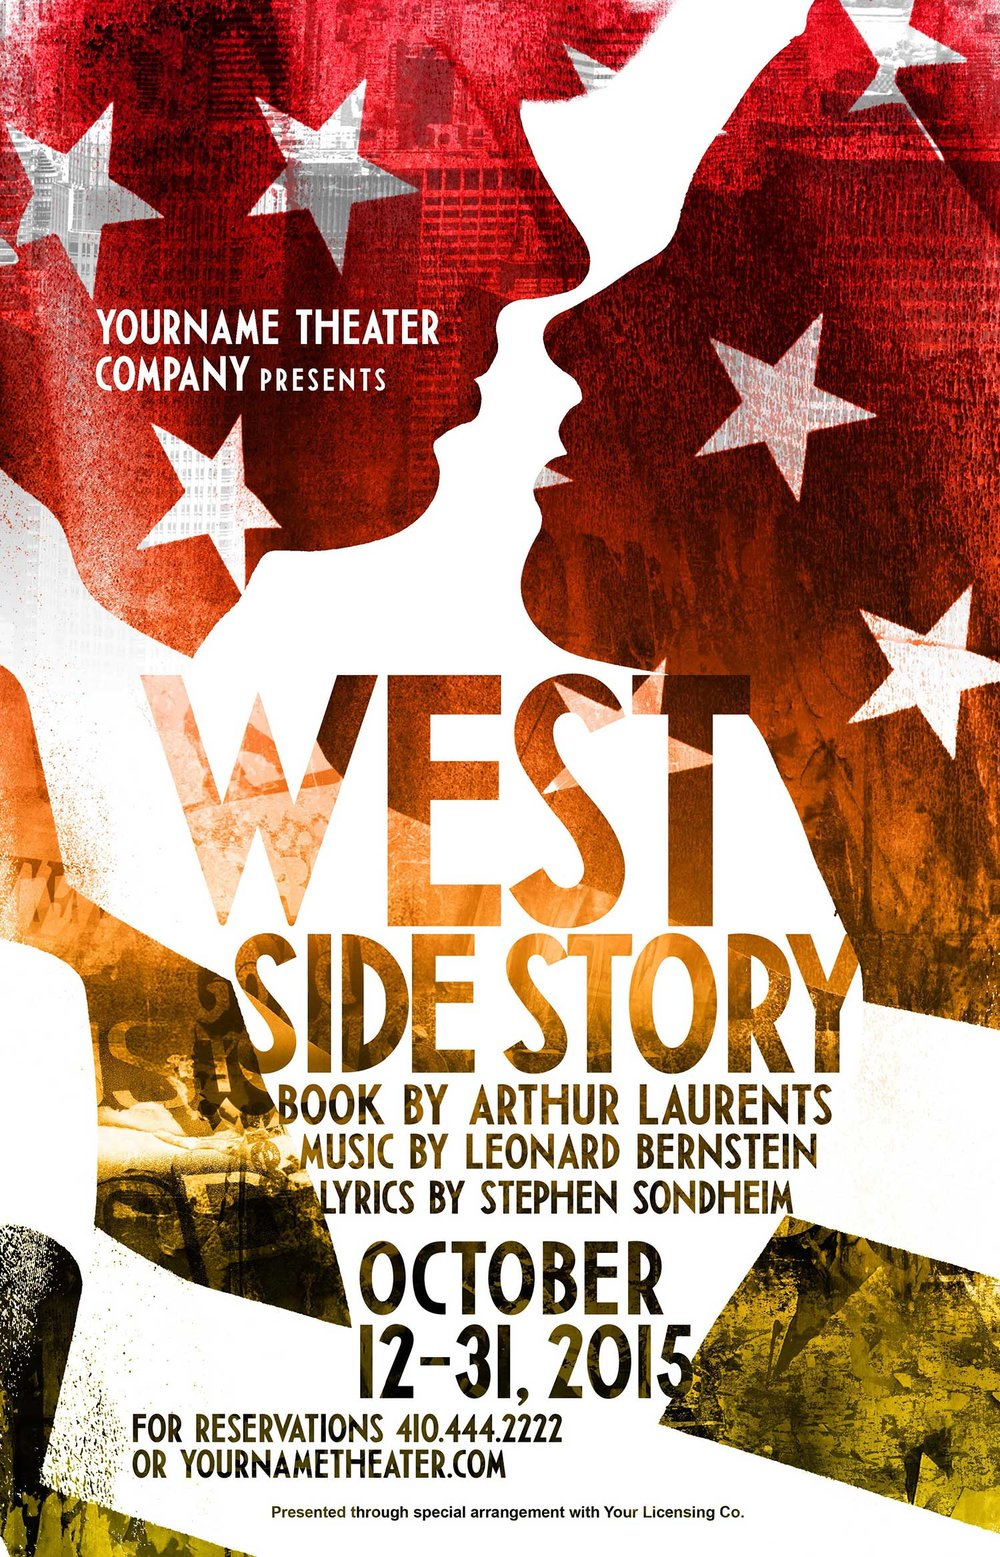 a review of arthur laurents play west side story Theater review: west side story west side story opened on broadway in 1957 with a book by arthur laurents gregory maheu and lissa de guzman play west side.